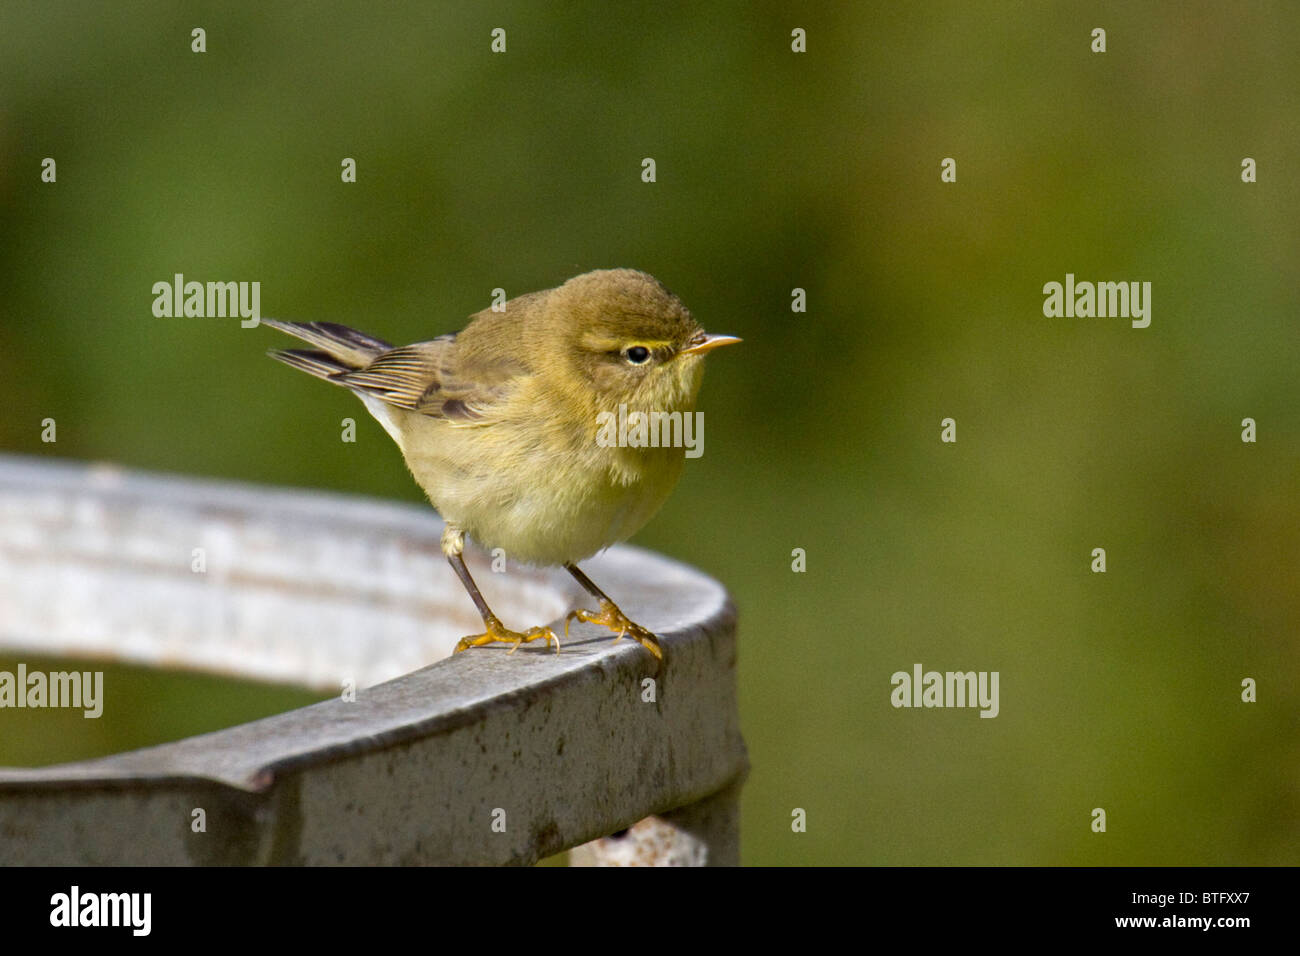 Chiffchaff standing on metal cattle feeder Stock Photo